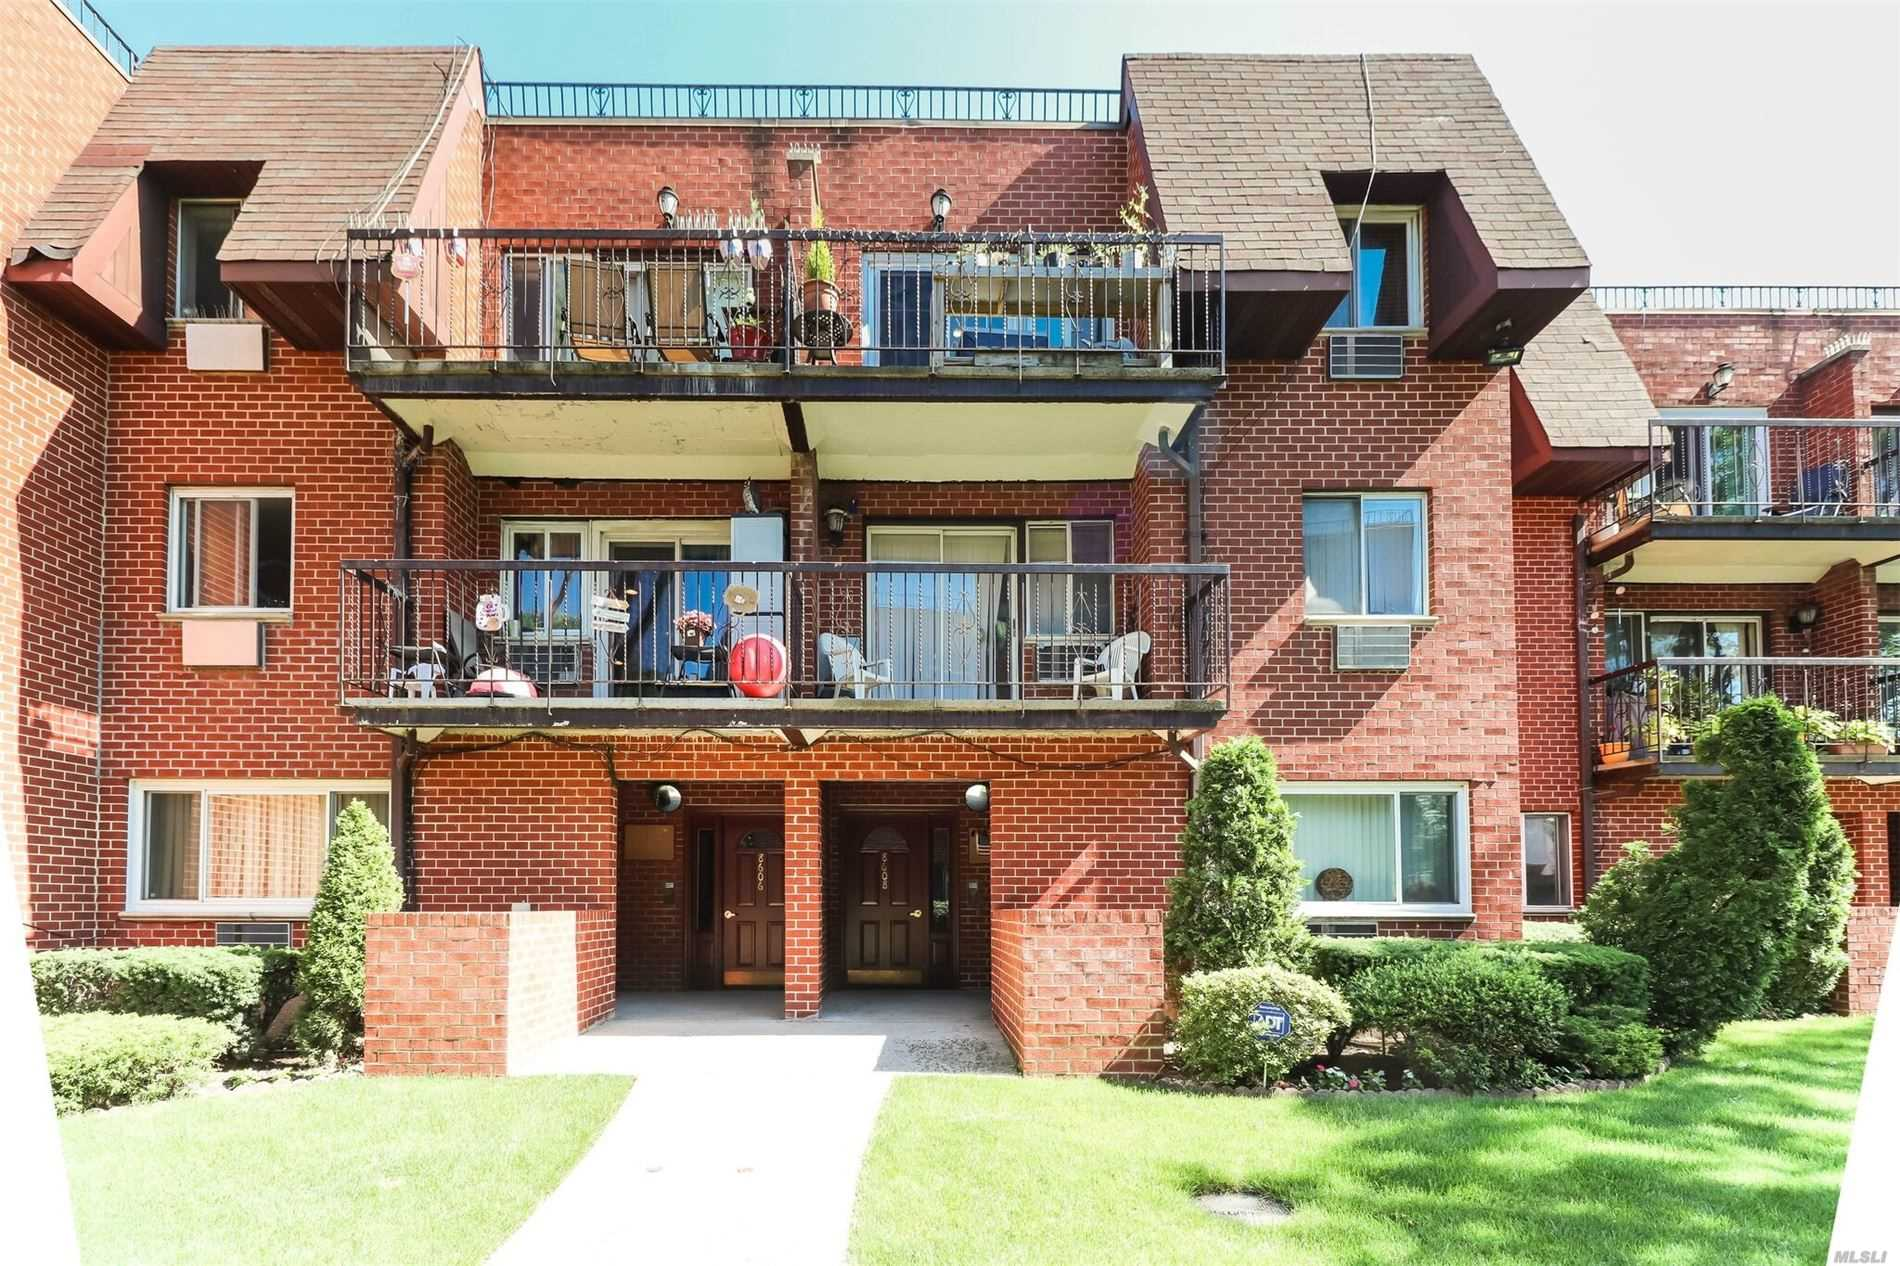 Property for sale at 86-08 Dumont Avenue # 4C, Ozone Park NY 11417, Ozone Park,  New York 11417